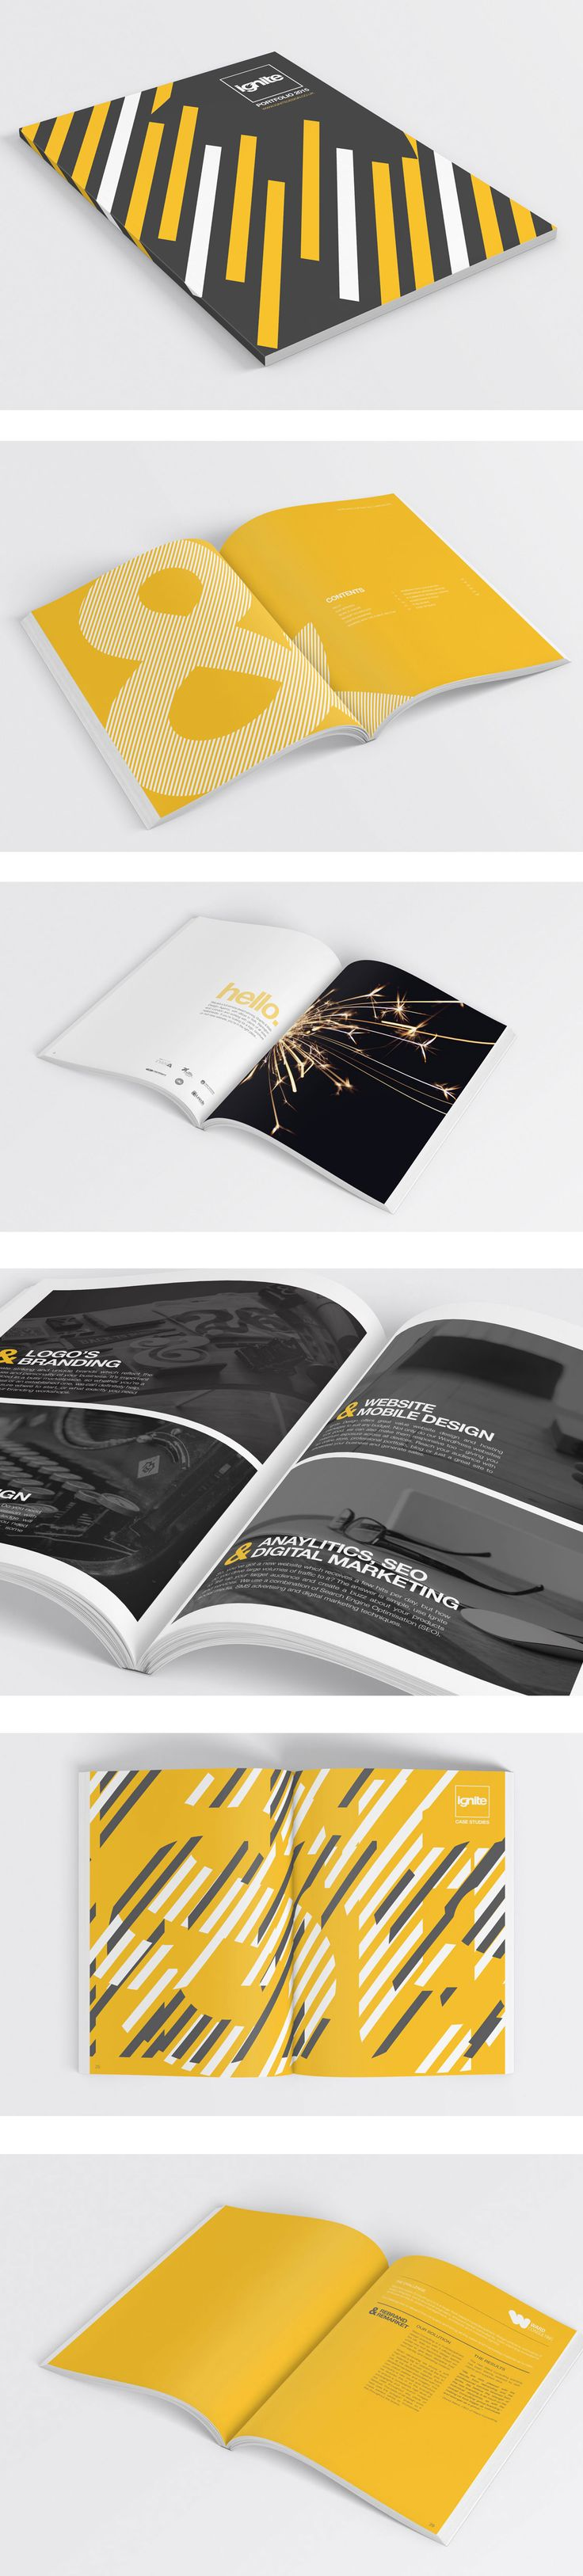 If you missed it last year we'd like to introduce you to our new online create portfolio for 2015. We hope you like it! View it here: http://issuu.com/ignite-design/docs/2015_brochure-single_pages/1?e=14555989/10334415